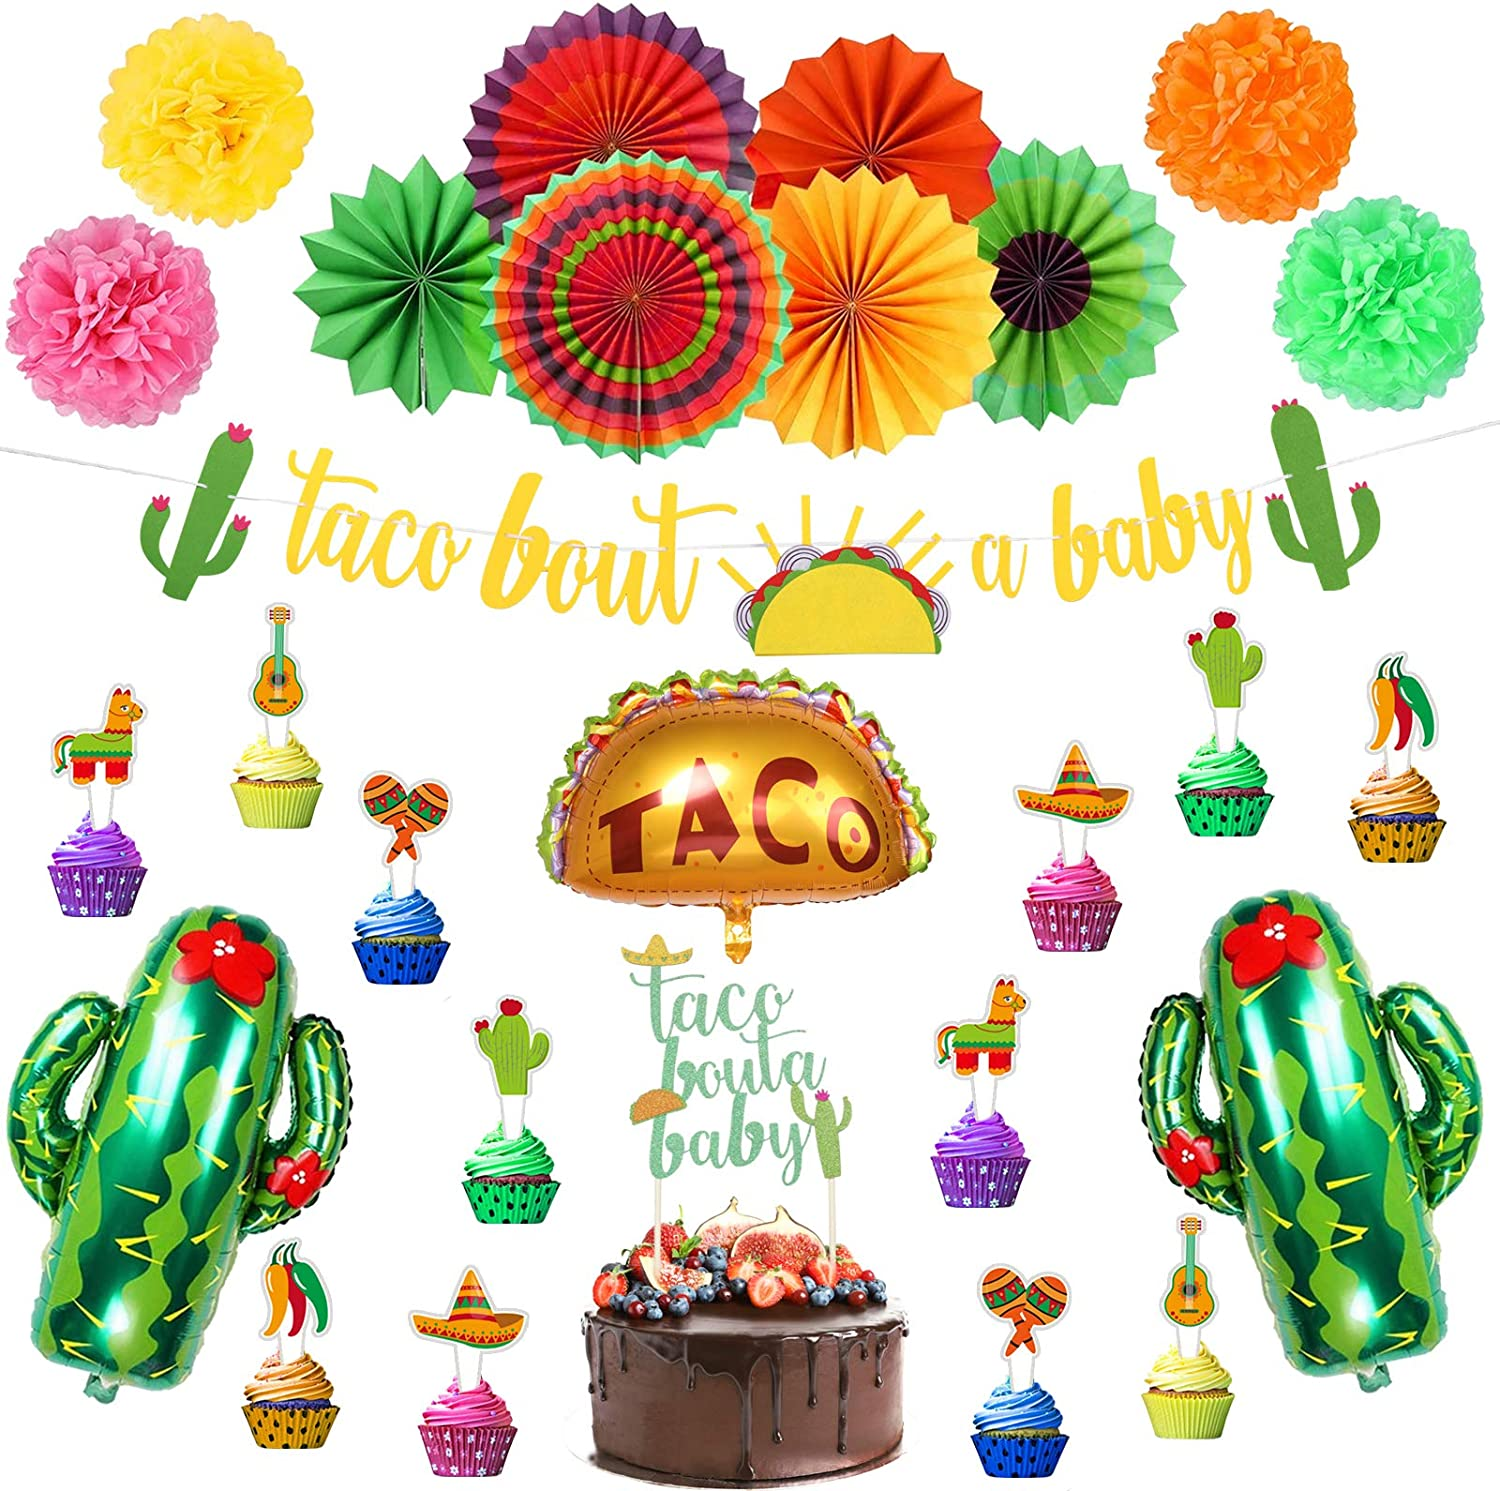 Ayamuba Taco Bout a Baby Decoration,Mexican Birthday Party Decoration with Fiesta Paper Fans, Taco Bout a Baby Banner, Cactus Balloons for Fiesta Baby Shower Decoration, Wedding Décor